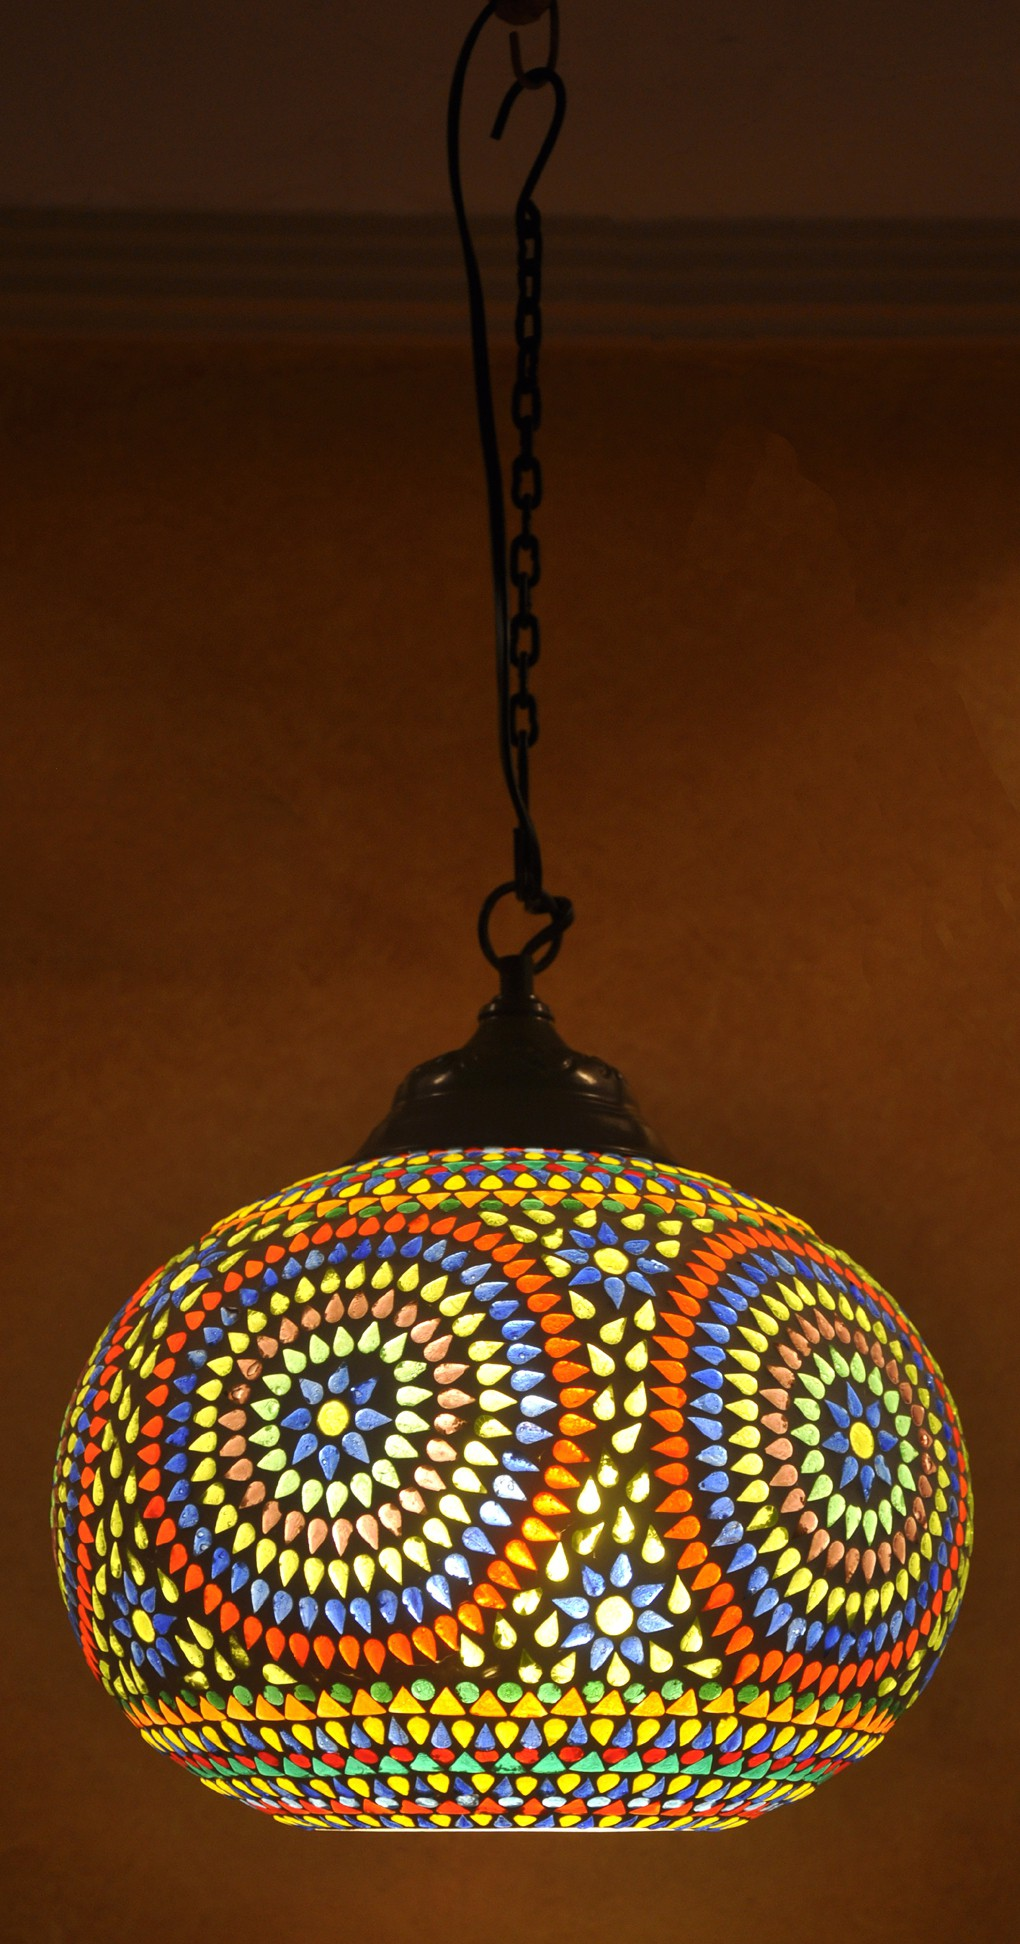 Lal Haveli Modern Ceiling Light Decorative Hanging Lamp Blue Glass Lantern